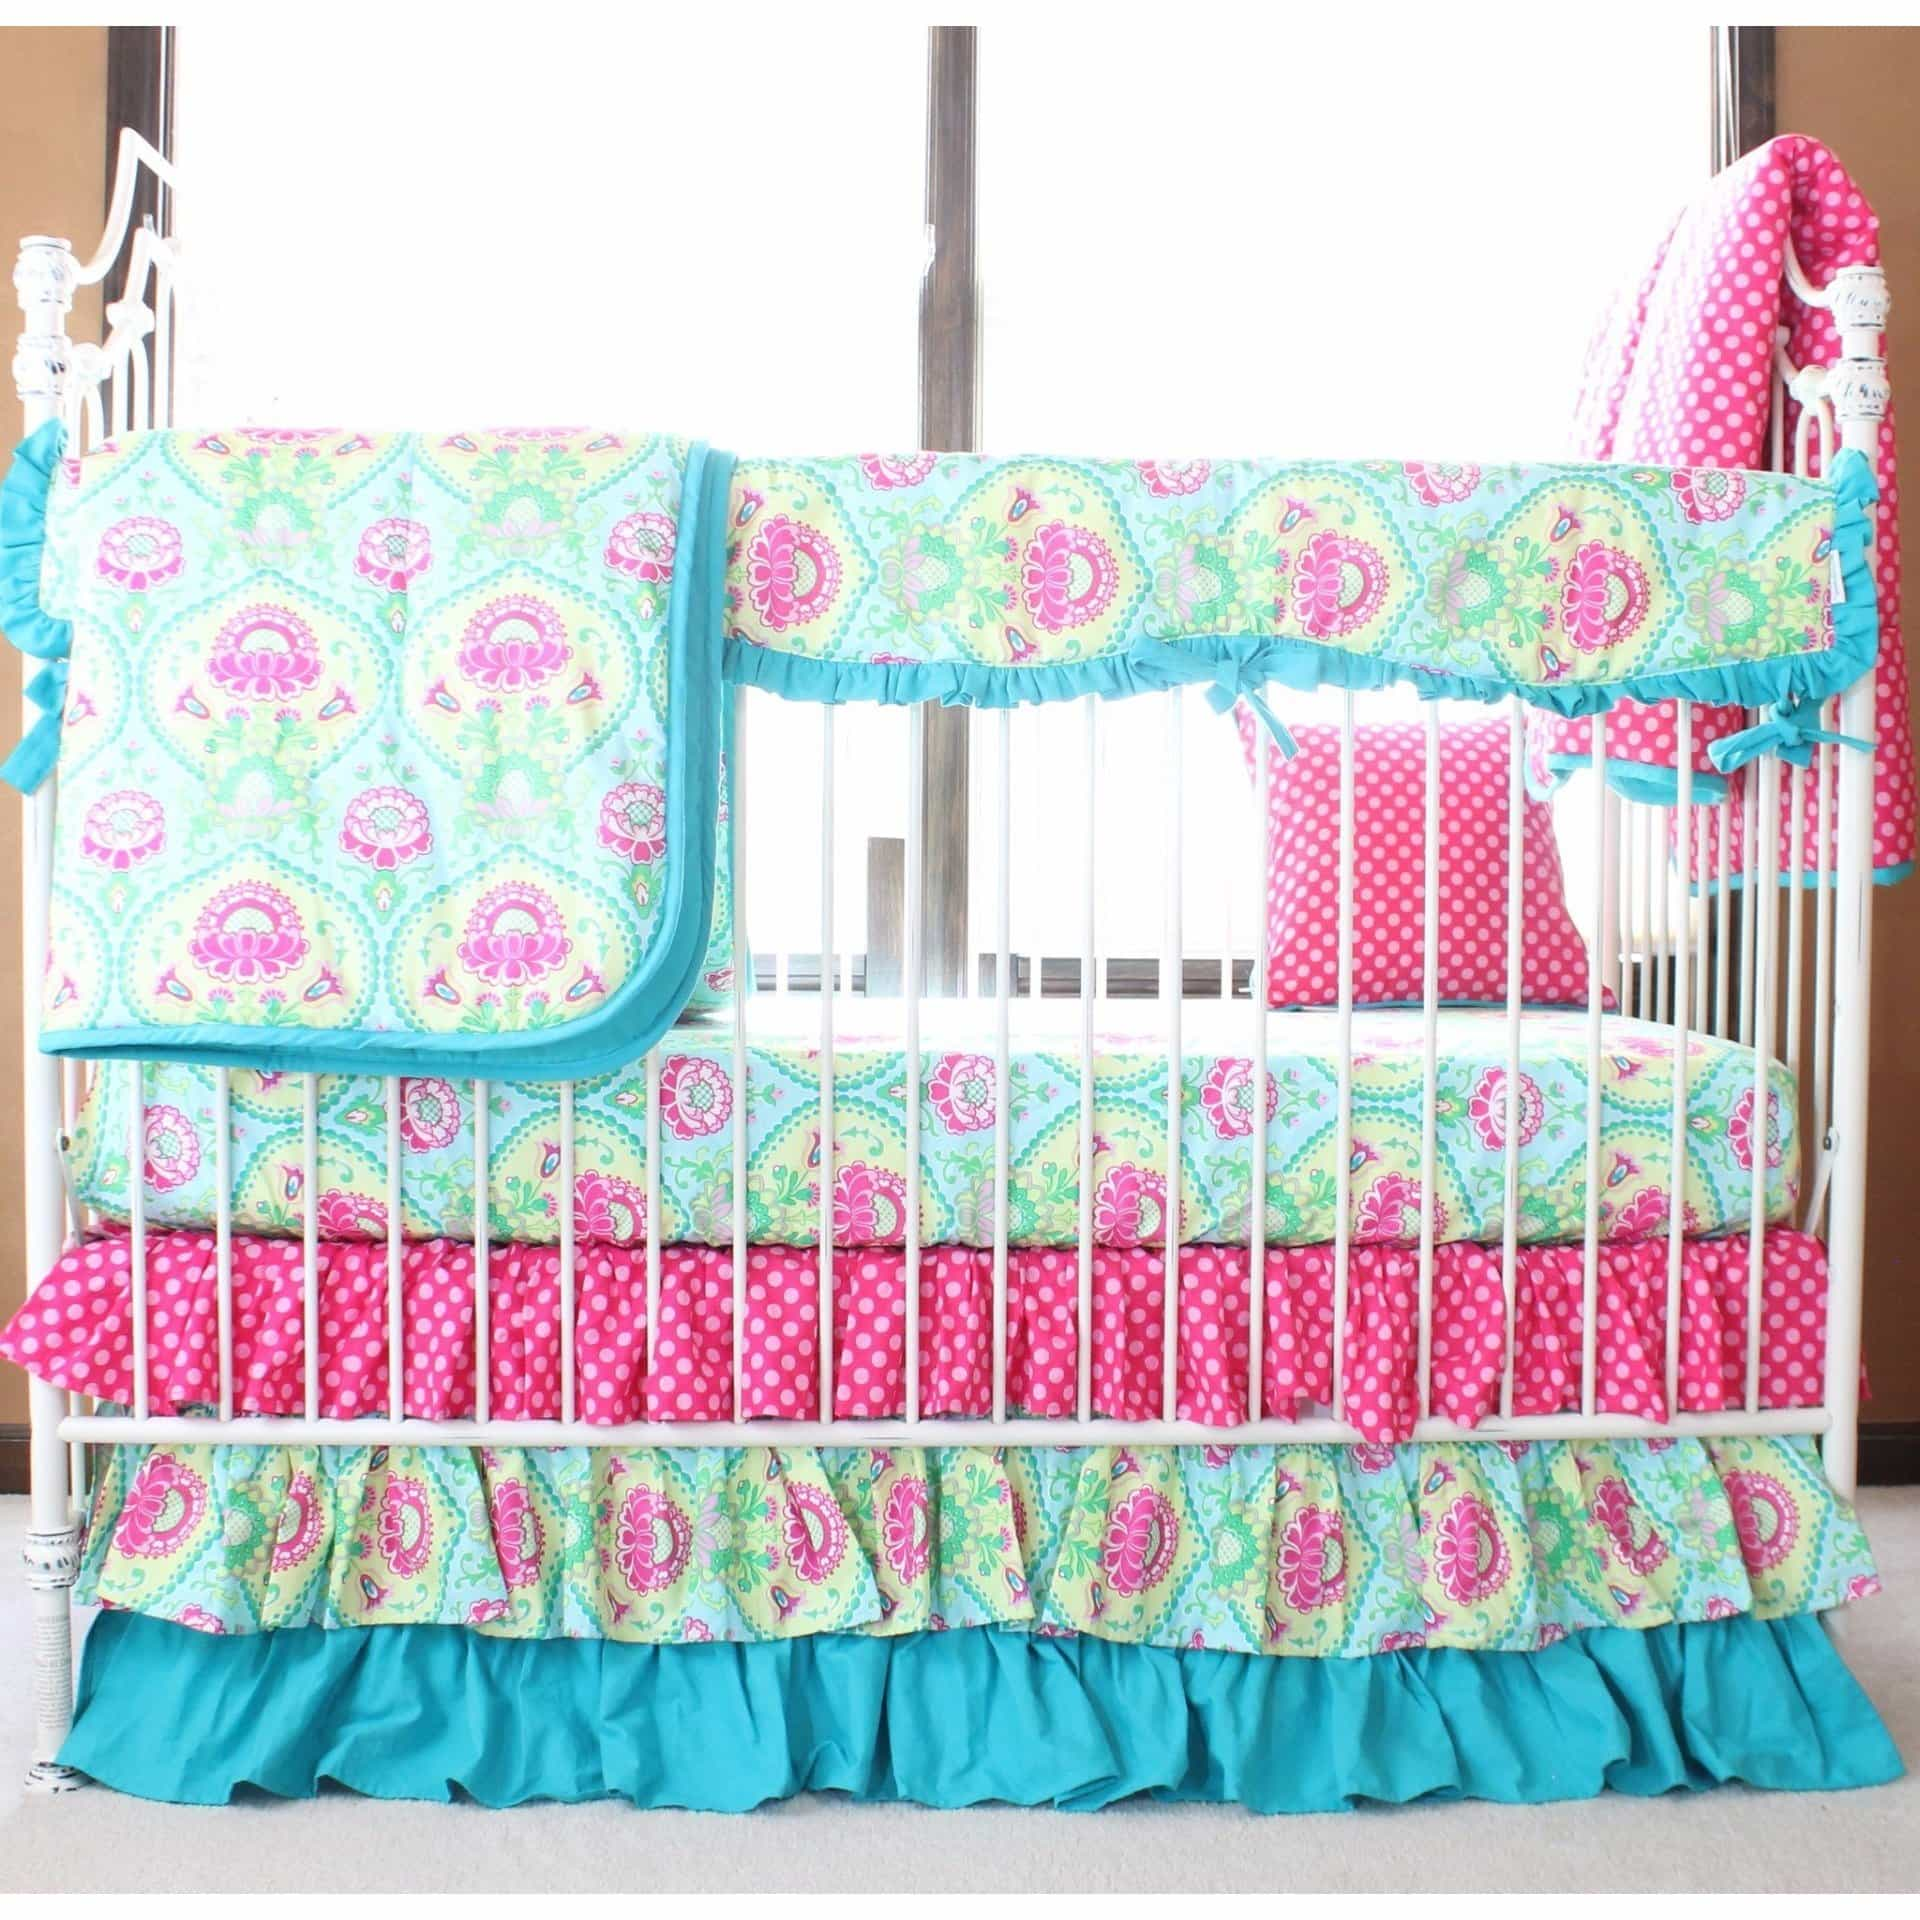 Lavinia Aqua Ruffled Crib Baby Bedding Set-Crib Bedding Set-Sheet Skirt Comforter and Railcover-Jack and Jill Boutique